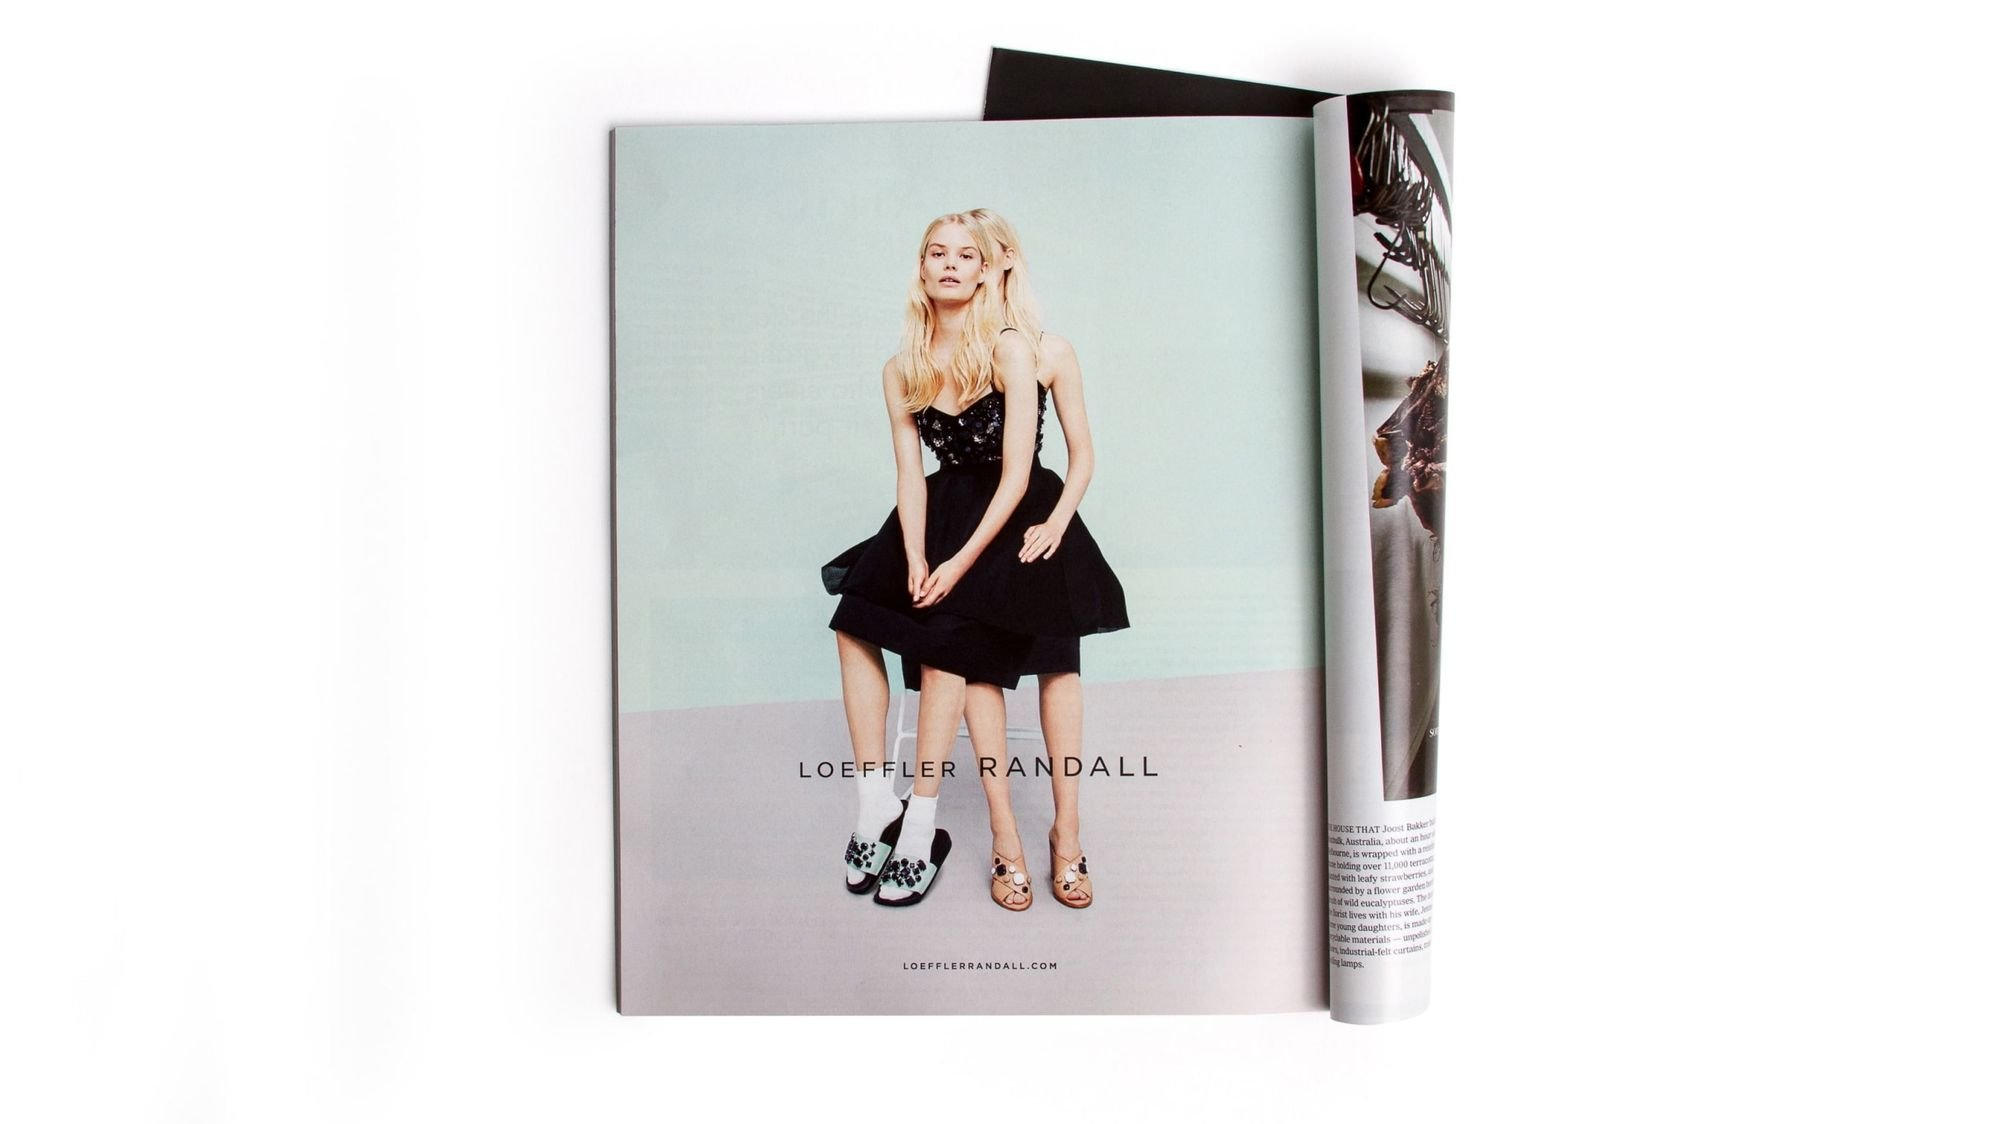 Photo of magazine ad, Loeffler Randall sandals. Branding and Art direction by RoAndCo